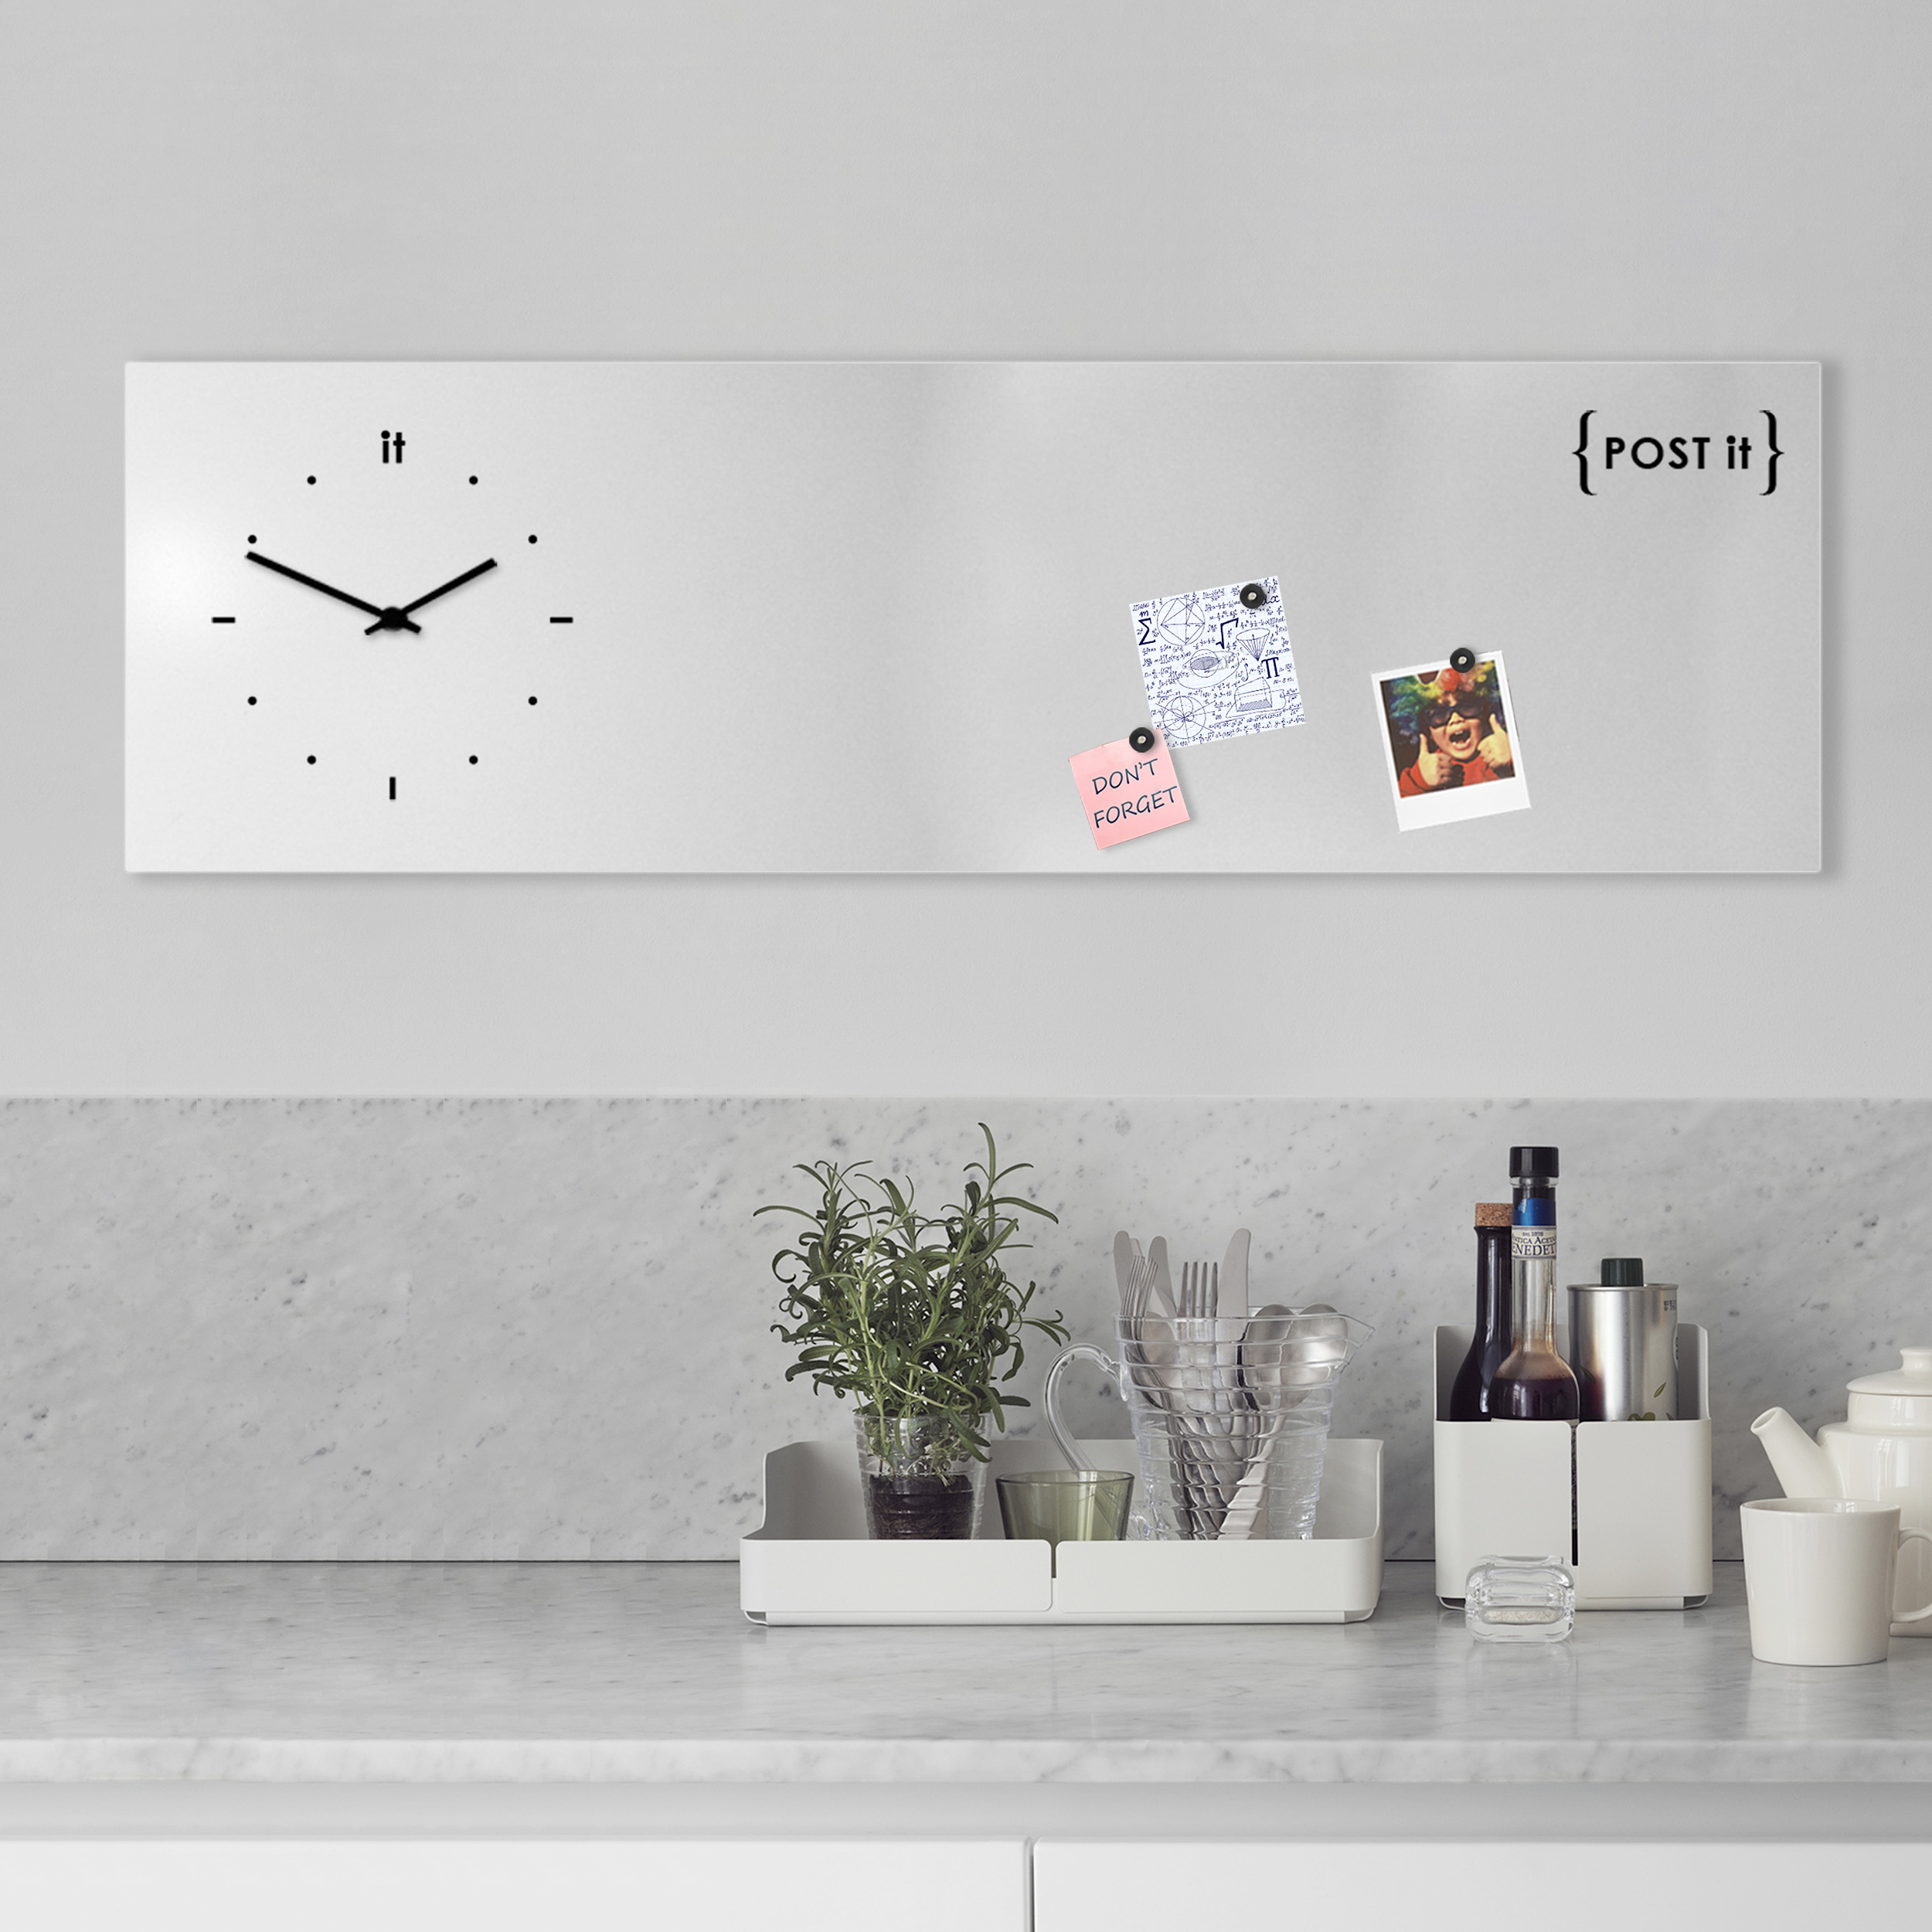 design-clock-magnetic-board-orologio-lavagna-magnetica-post it-white-mood